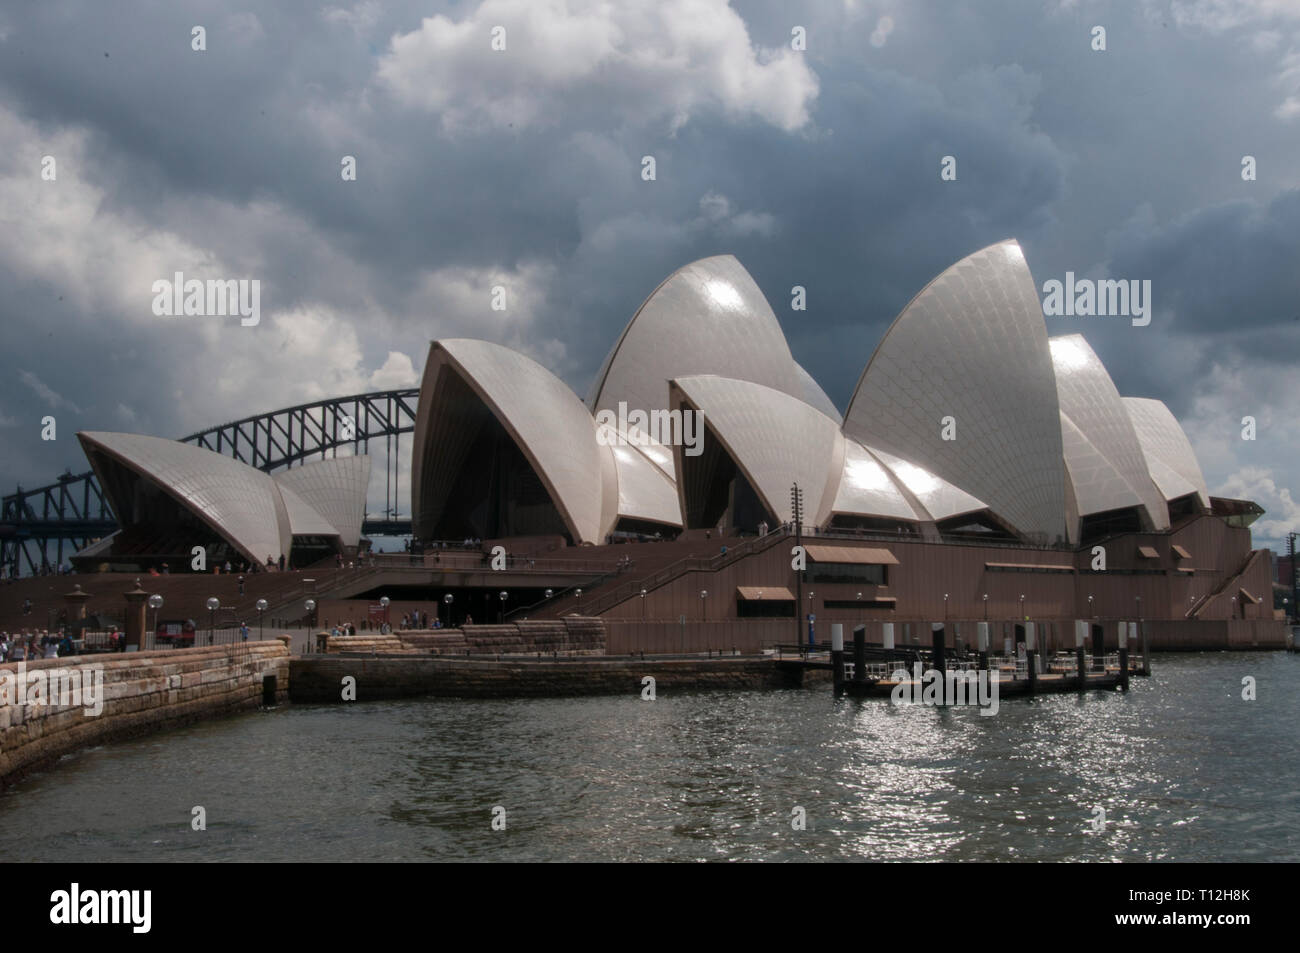 Sydney Opera House, with the Harbour Bridge beyond, against a stormy sky, Sydney, Australia Stock Photo